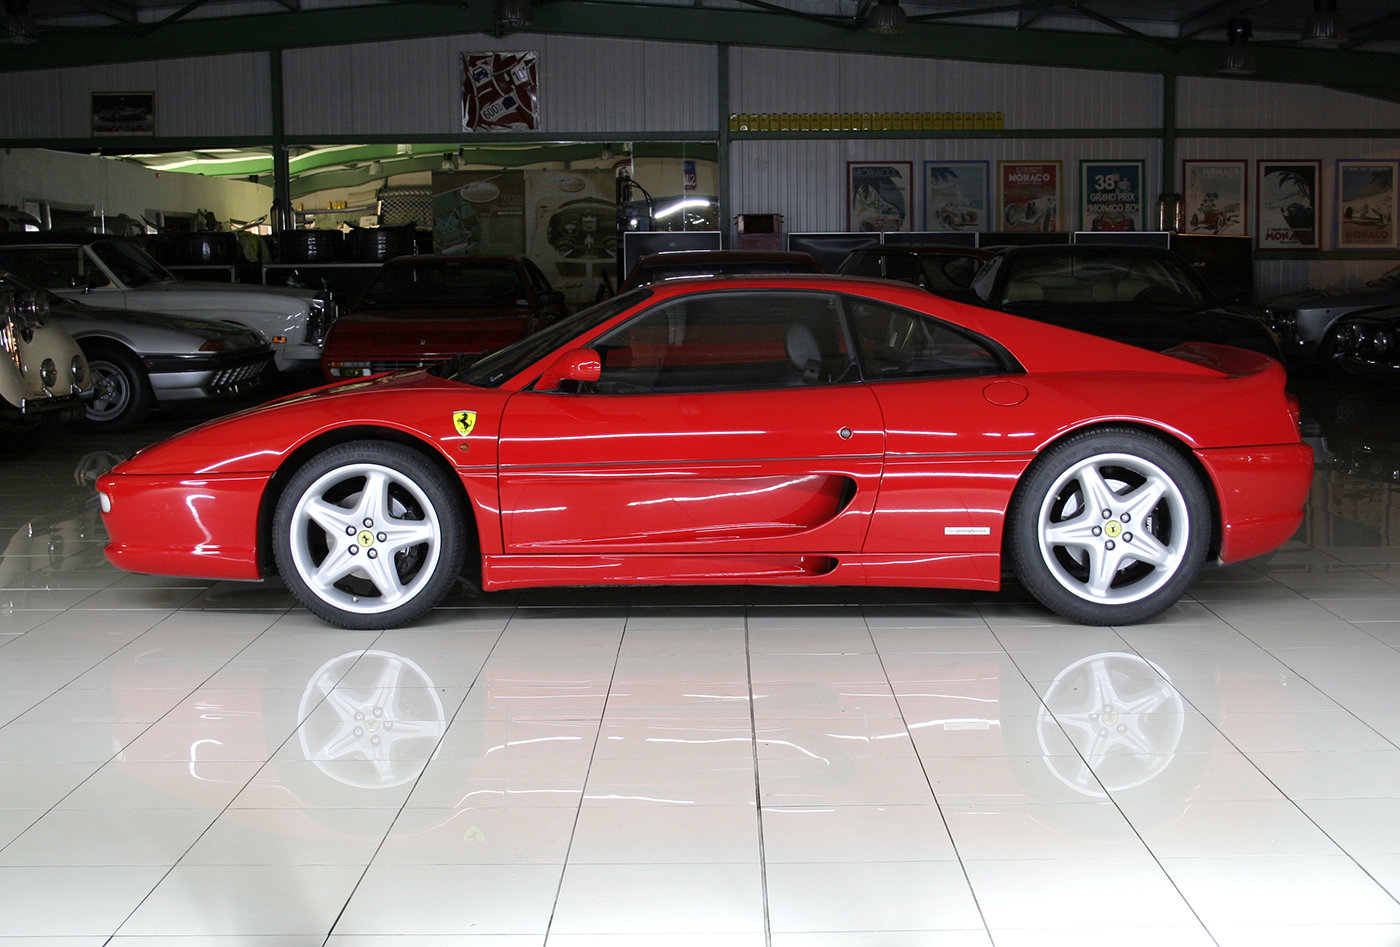 2000 - Ferrari 355 F1 GTB Rosso Corsa - Black For Sale (picture 2 of 6)